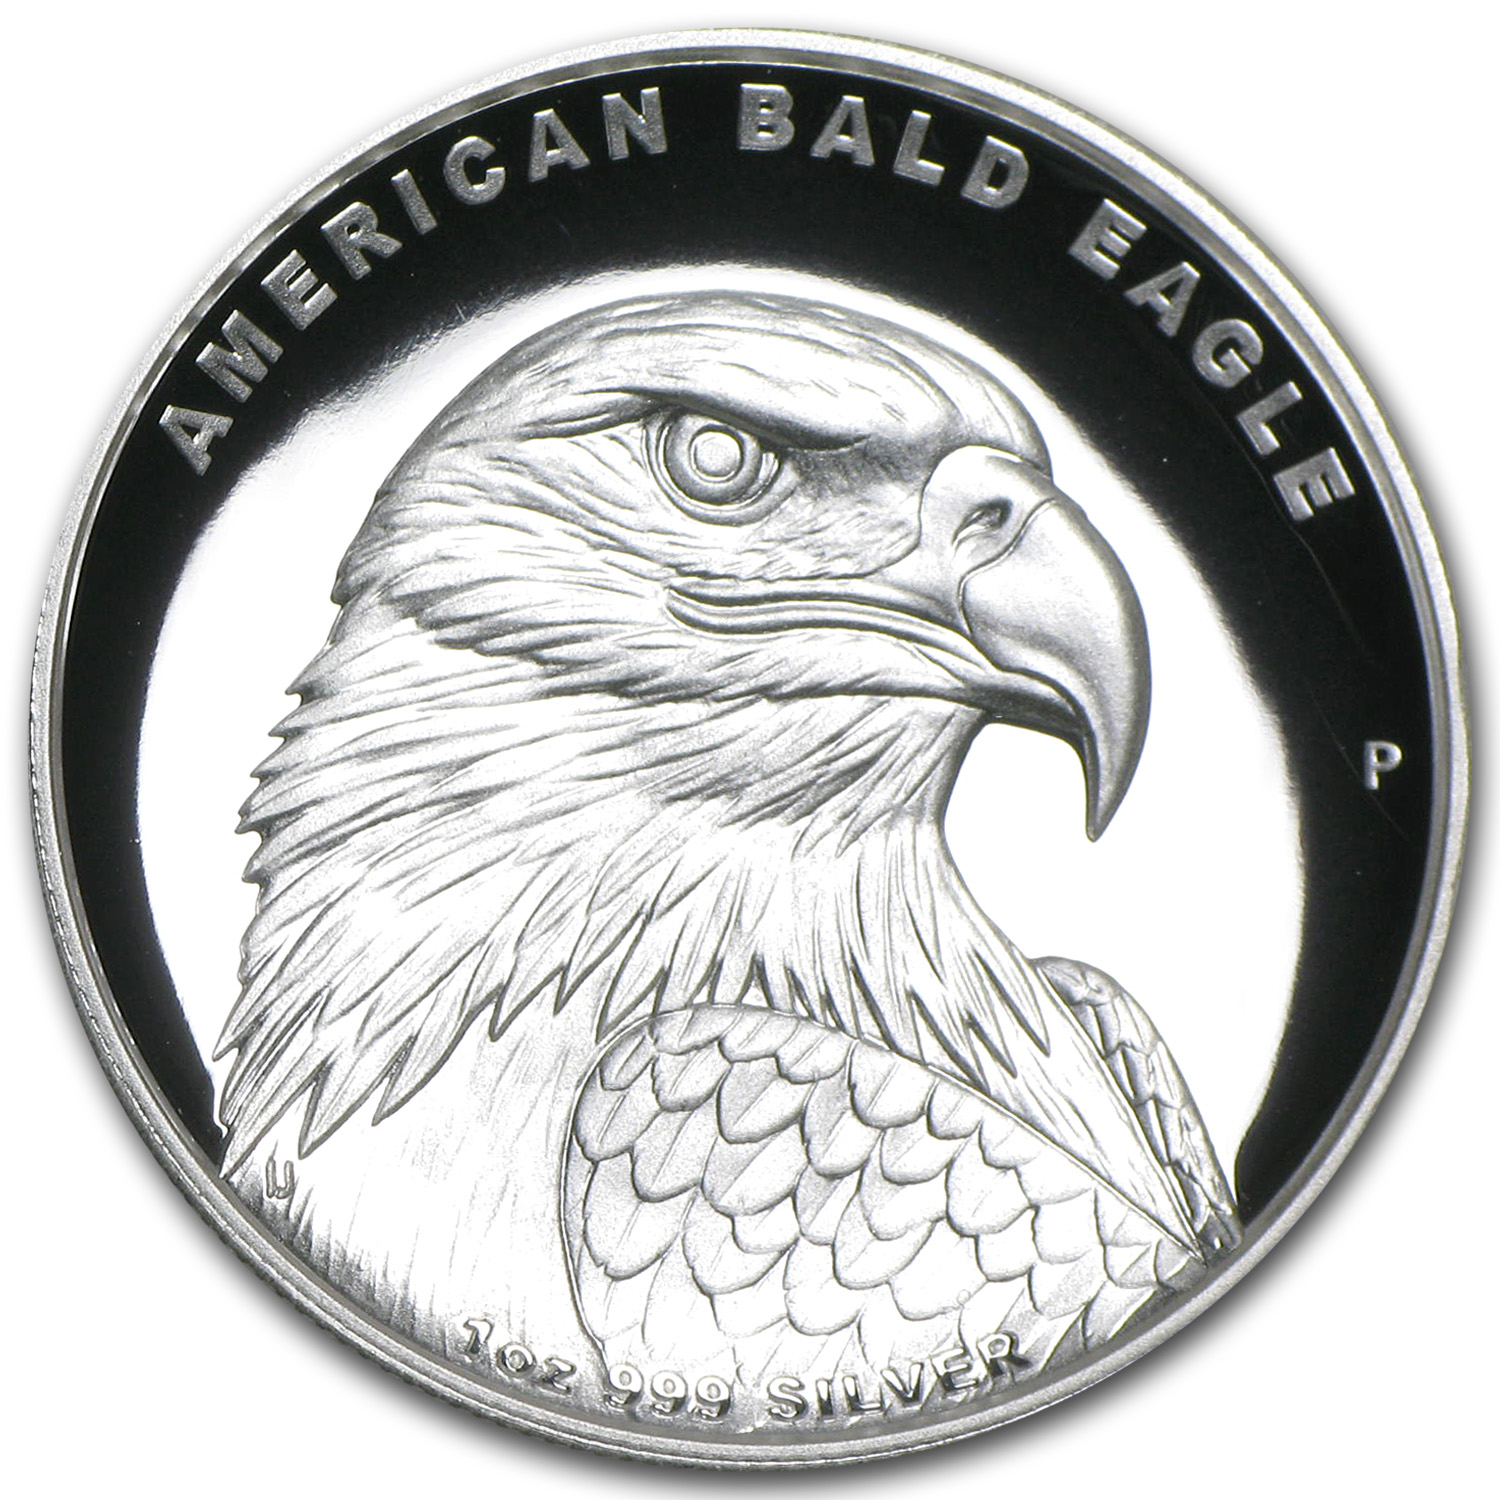 2014 1 oz Silver Bald Eagle Proof (High Relief, w/Box & COA)